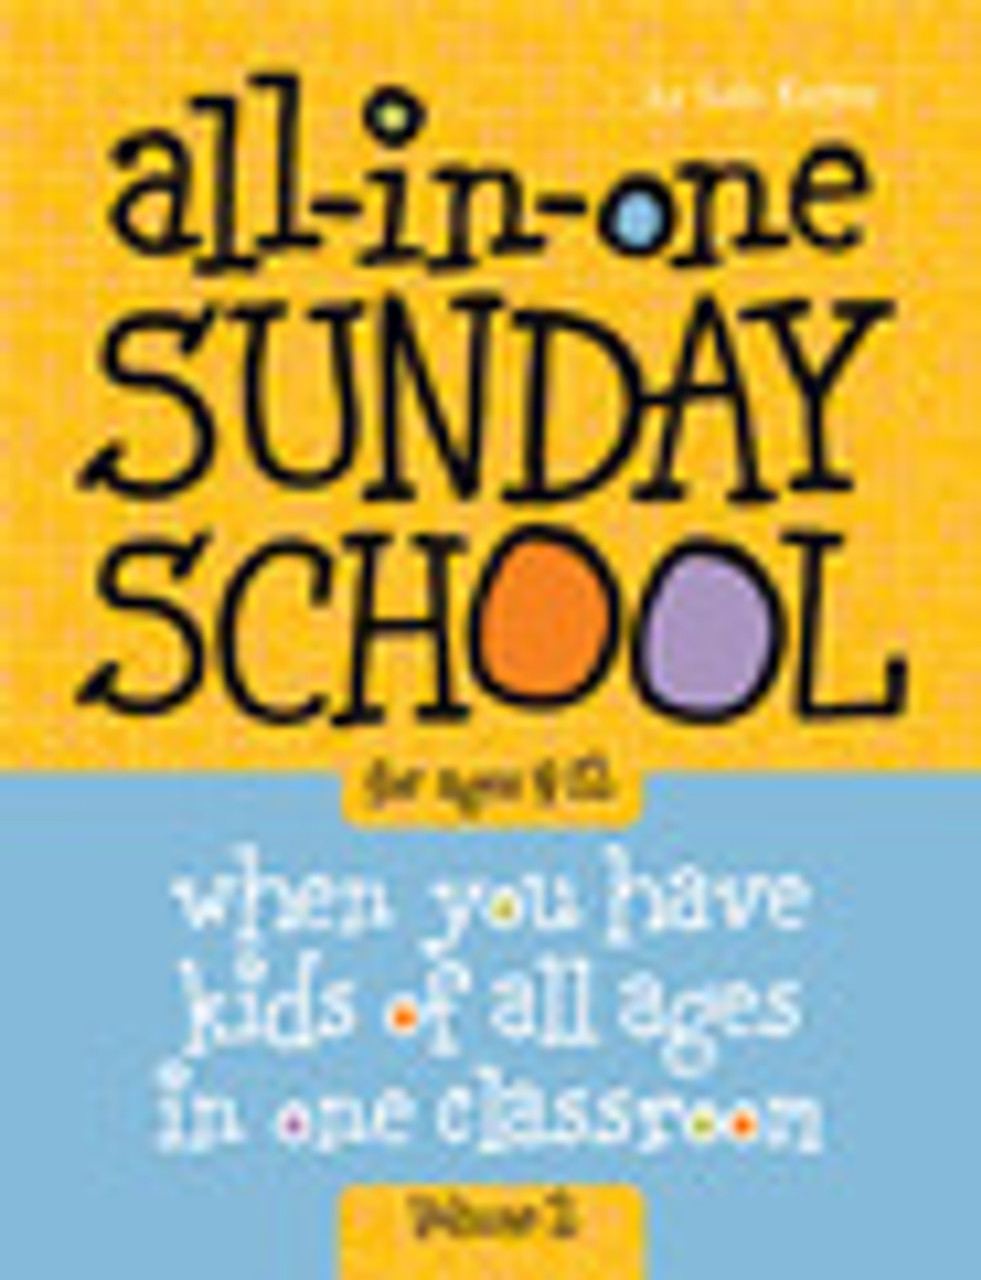 All in One Sunday School ages 4-12 Volume 2